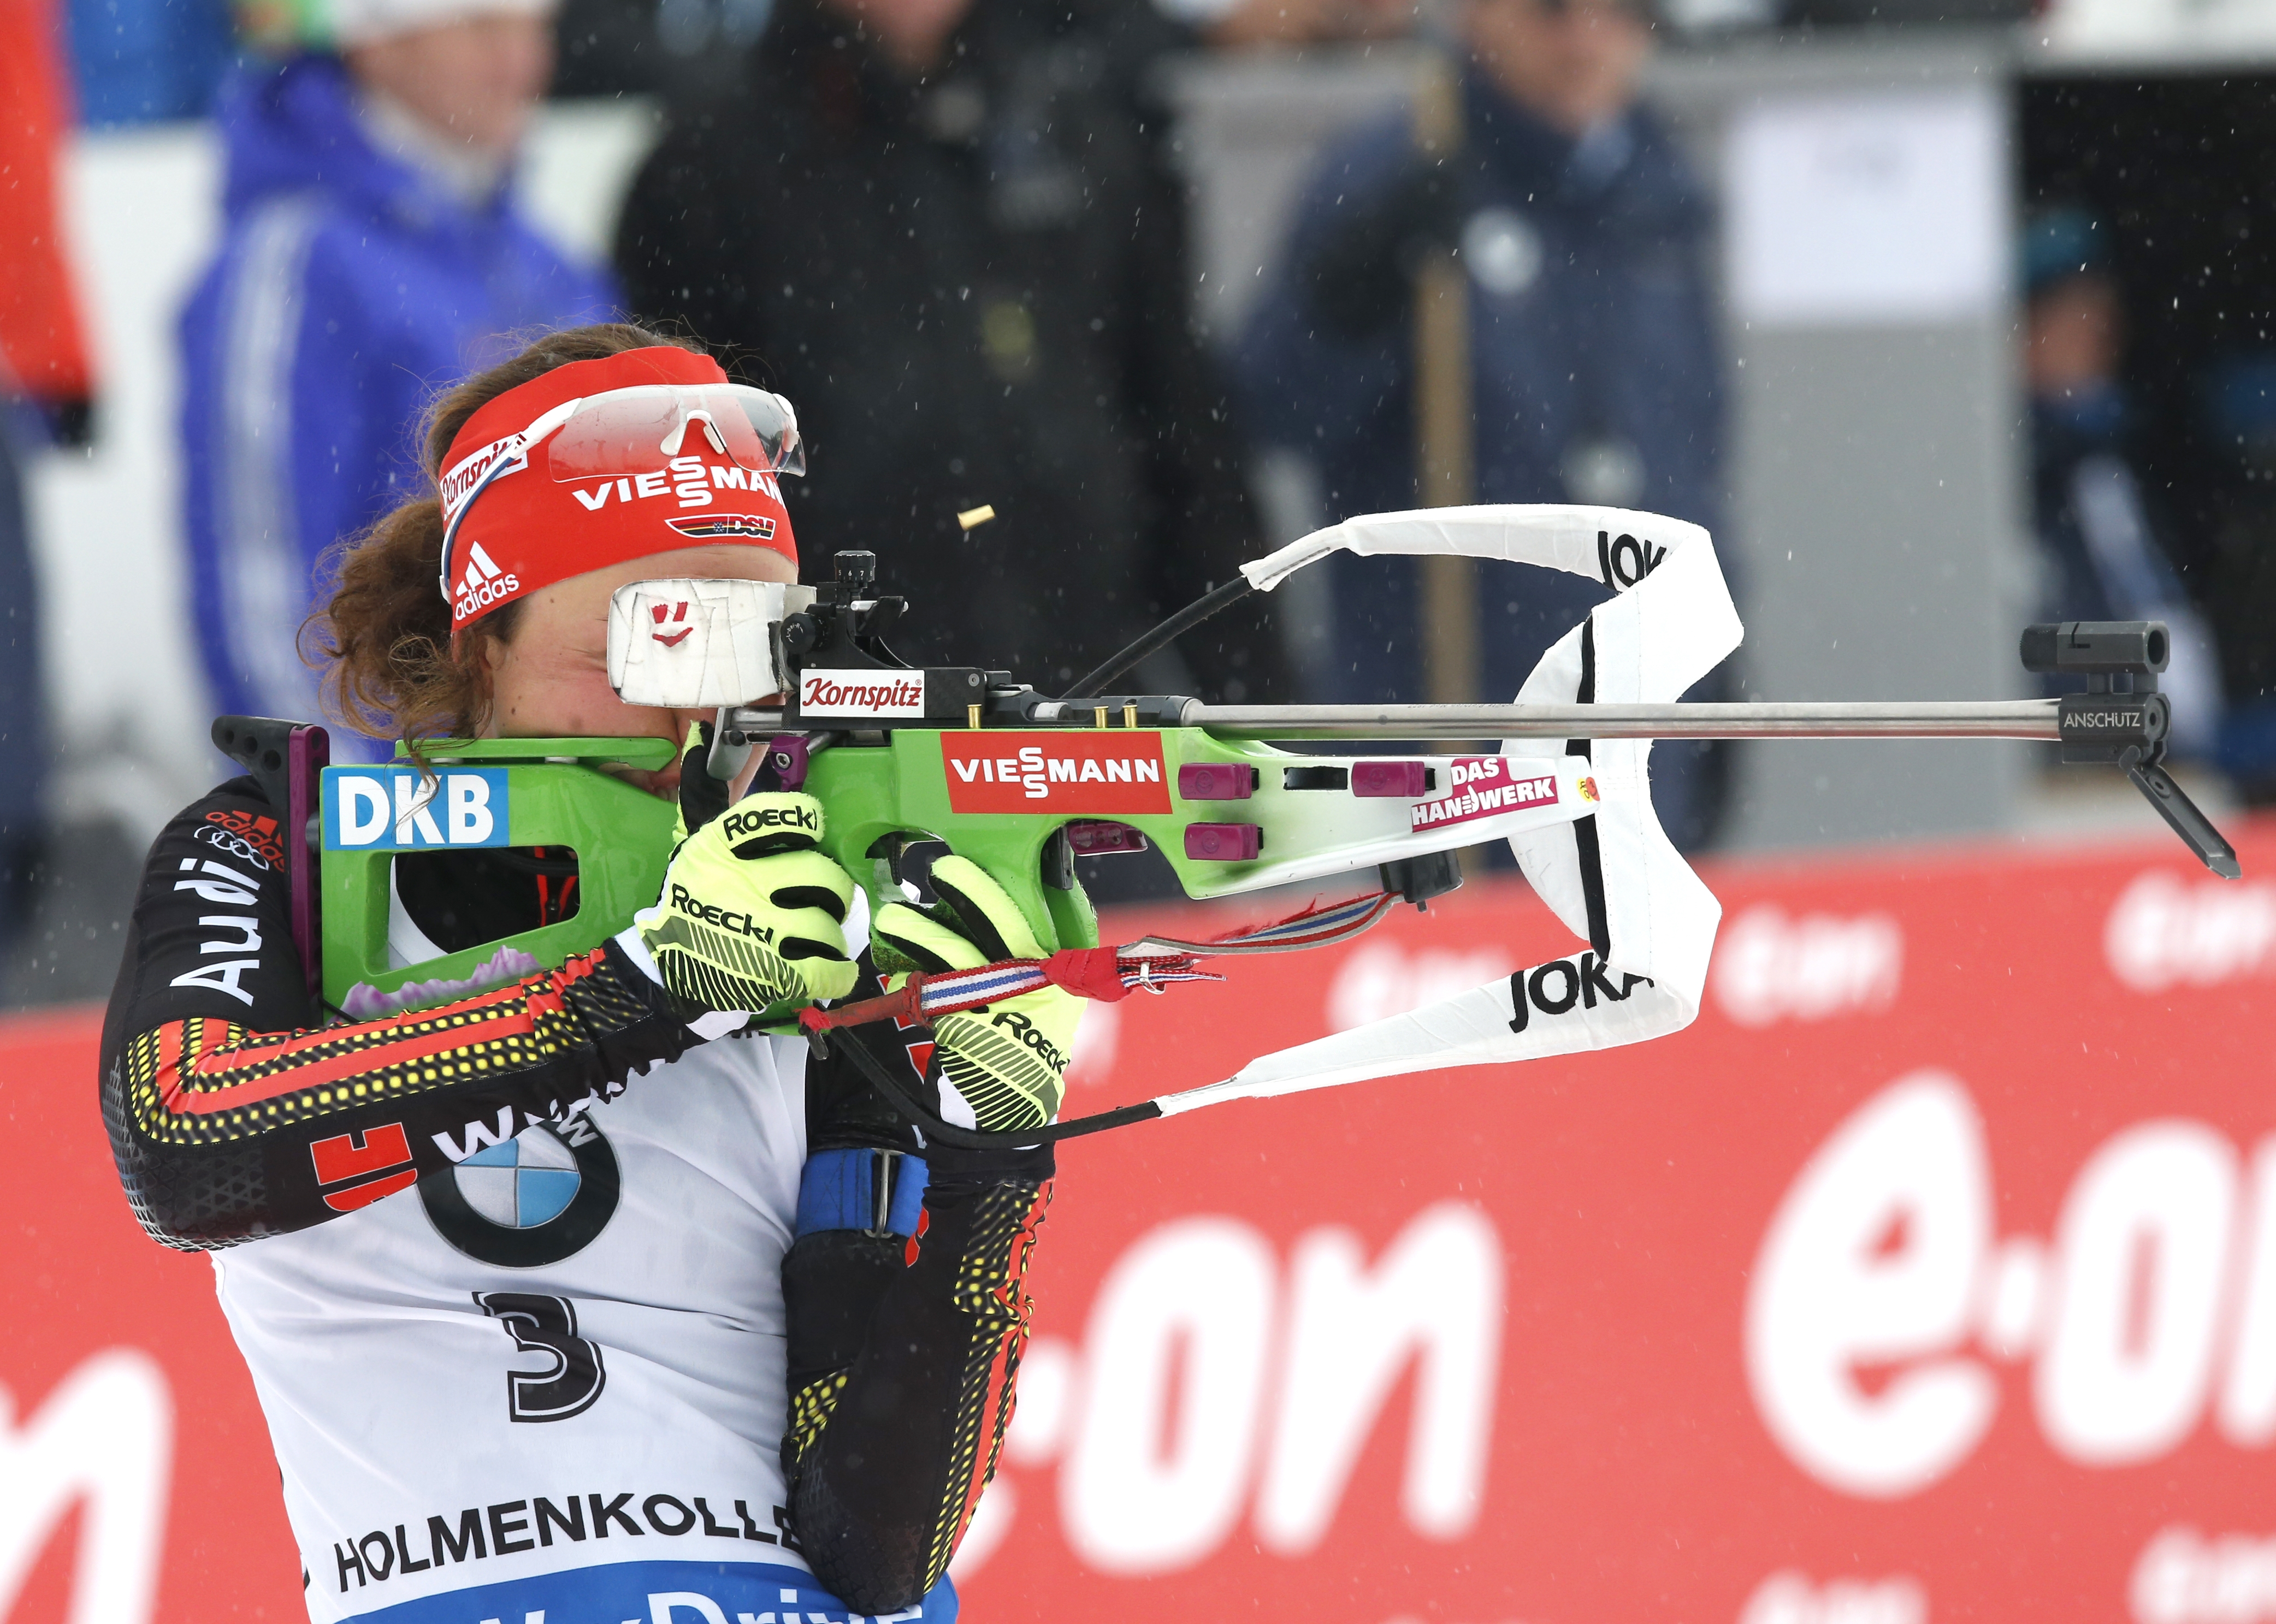 norway_biathlon_world_championships-da1a_r9330.jpeg